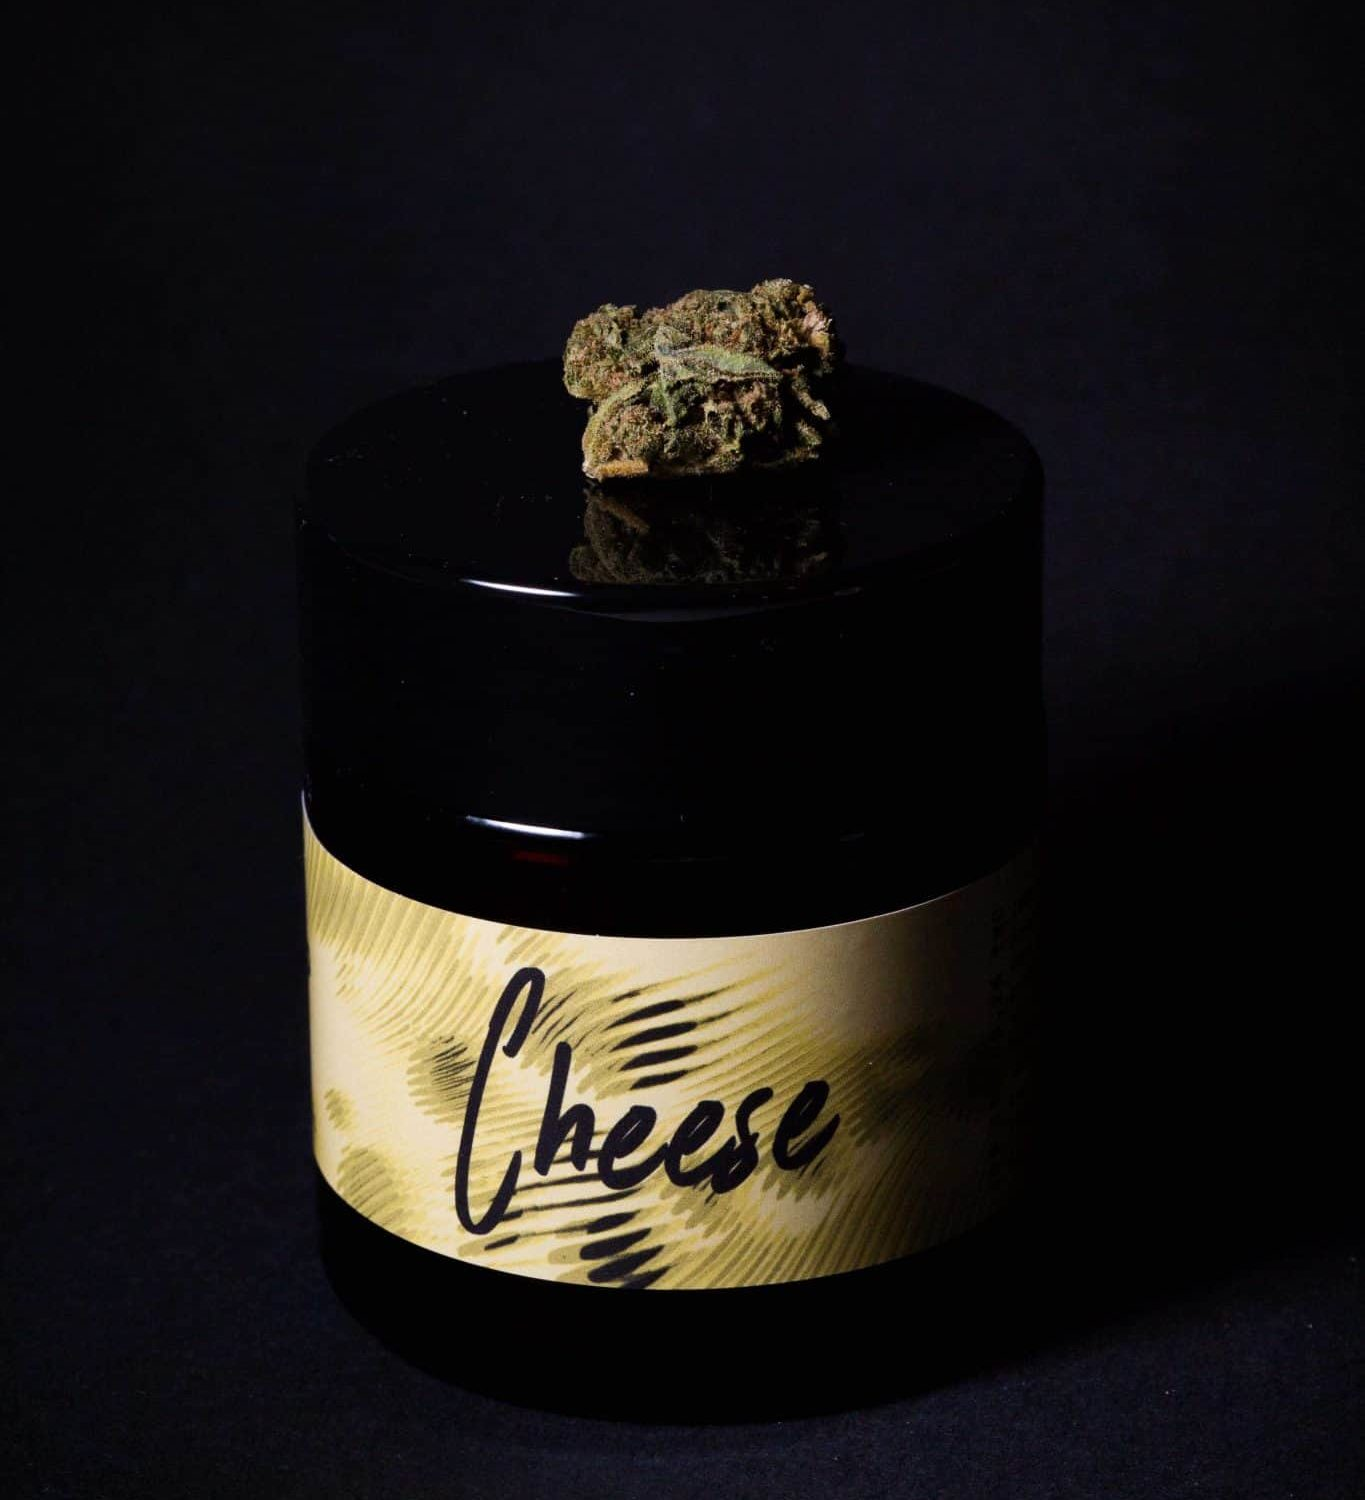 Cheese 10 % CBD Flowers